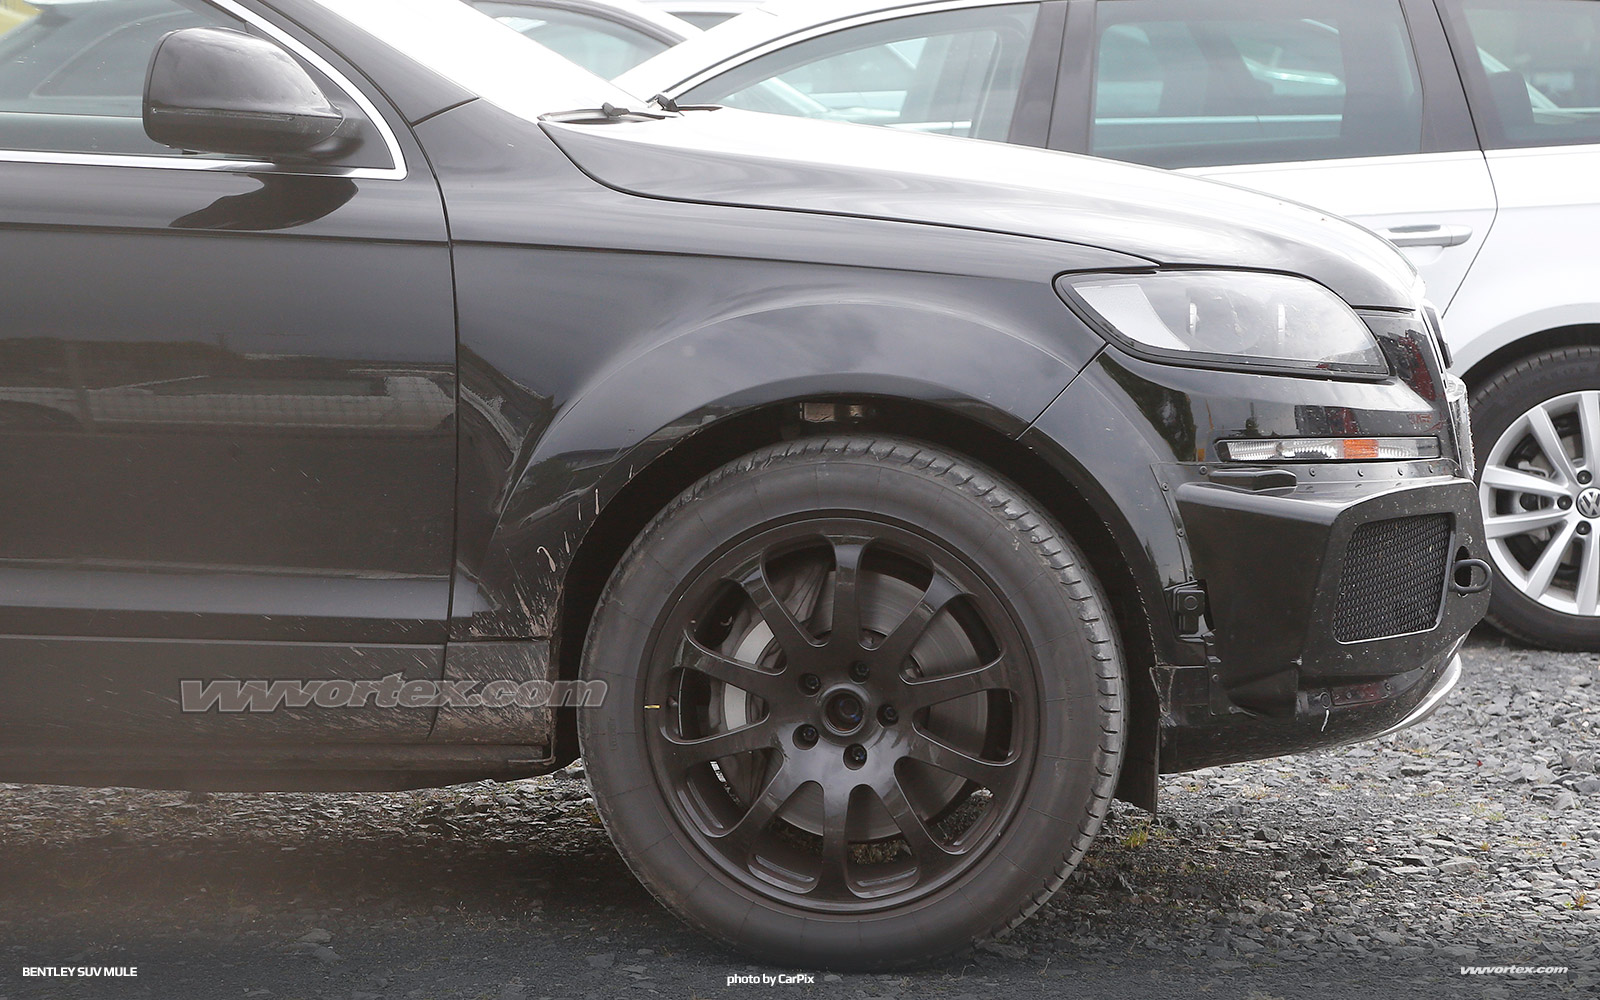 bentley-suv-mule-spy-photos-369